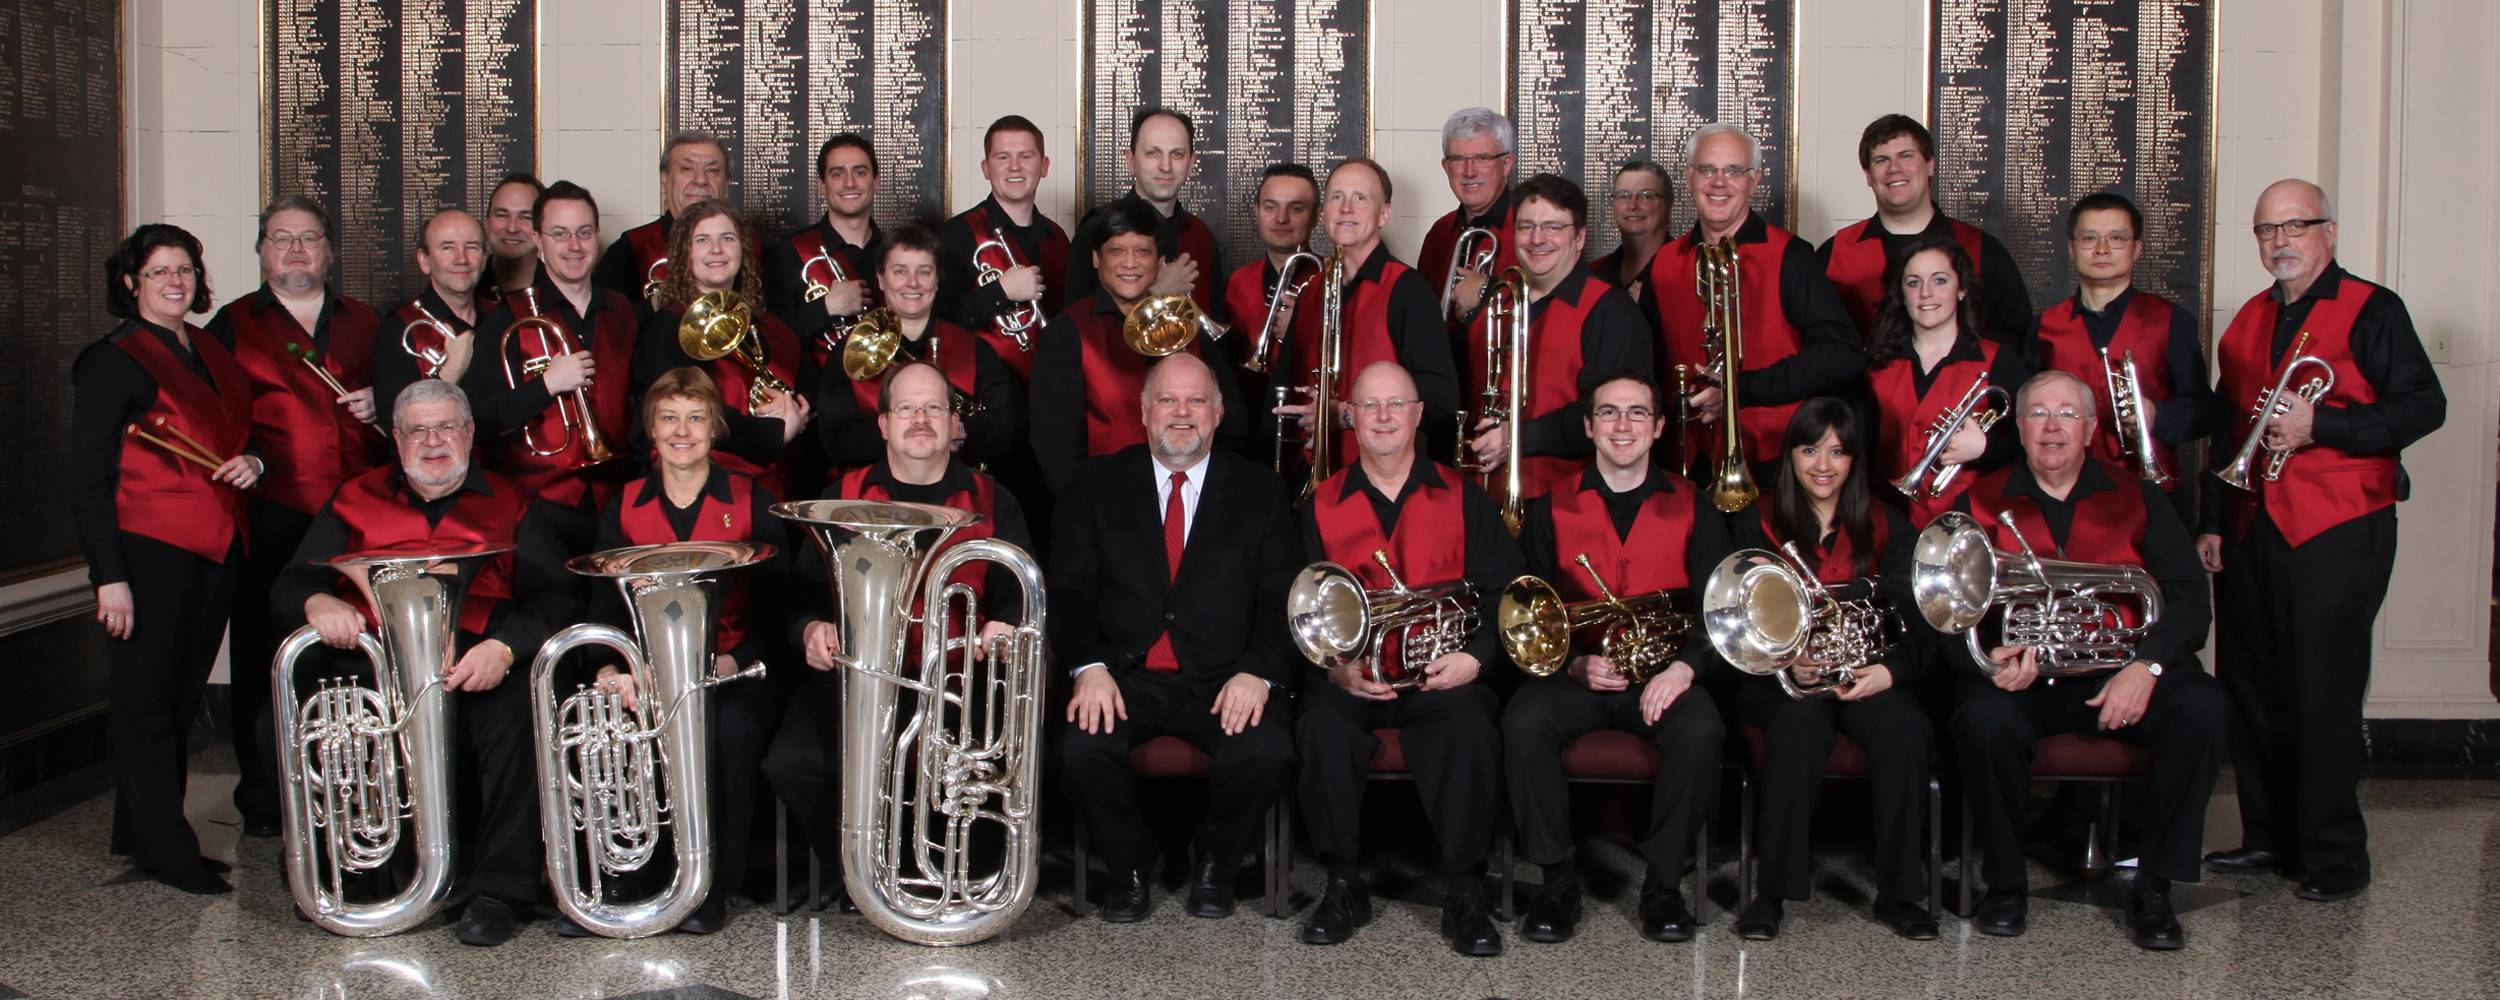 The Illinois Brass BandPhoto by The Illinois Brass Band